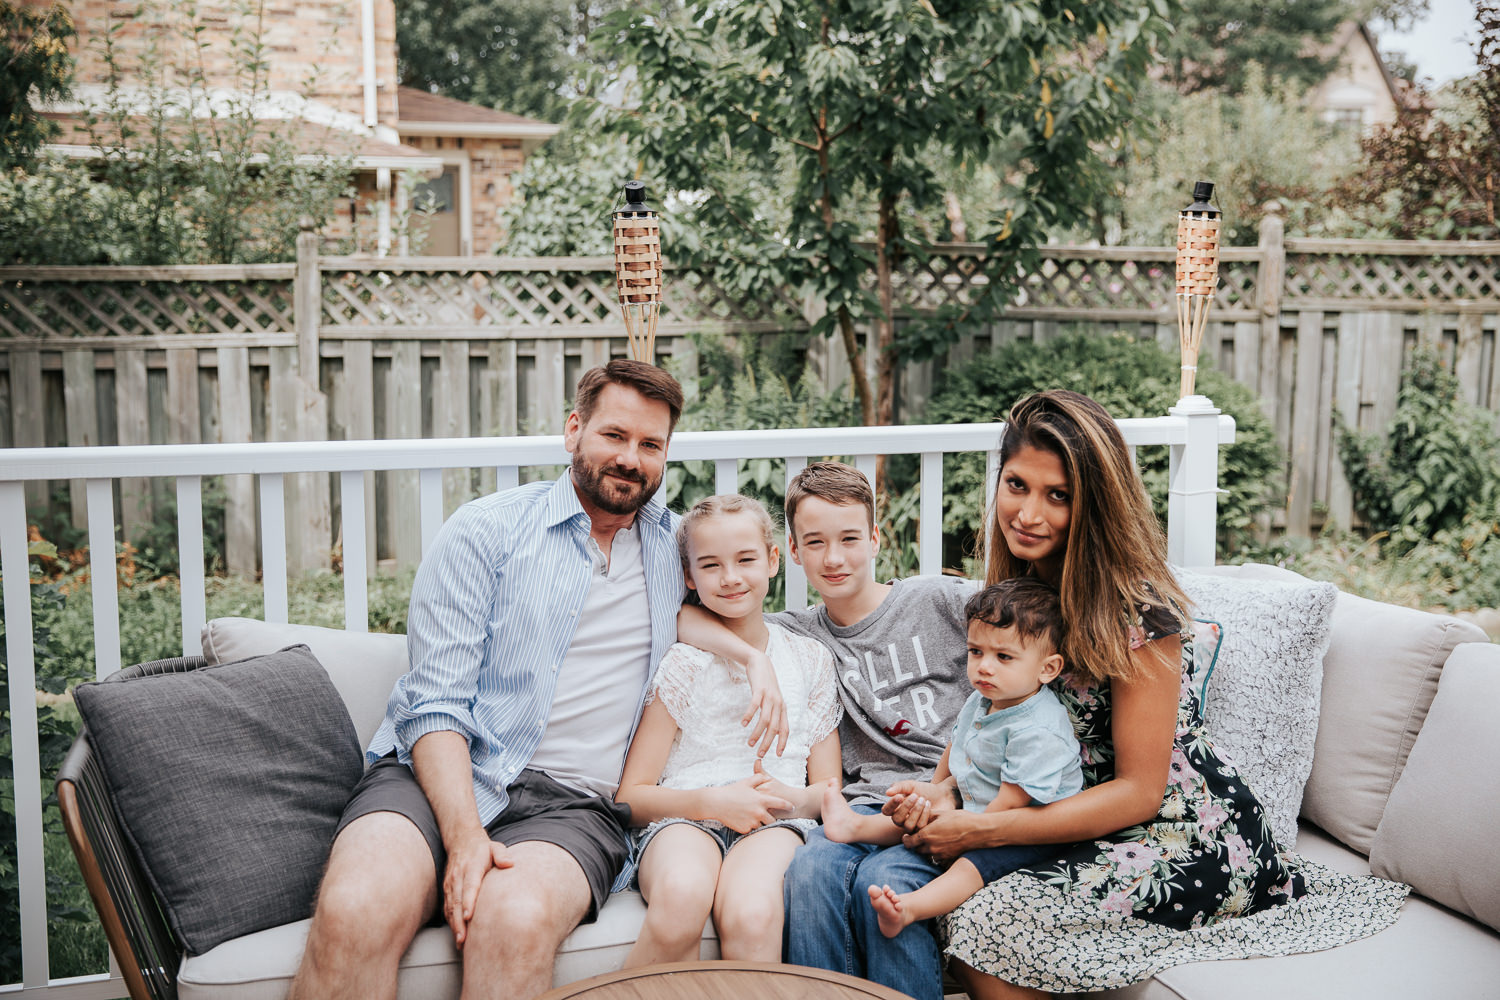 family of 5 sitting on couch on backyard deck, 11 year old girl, 13 year old boy and 1 year old baby sitting between parents, smiling at camera - Markham Lifestyle Photography